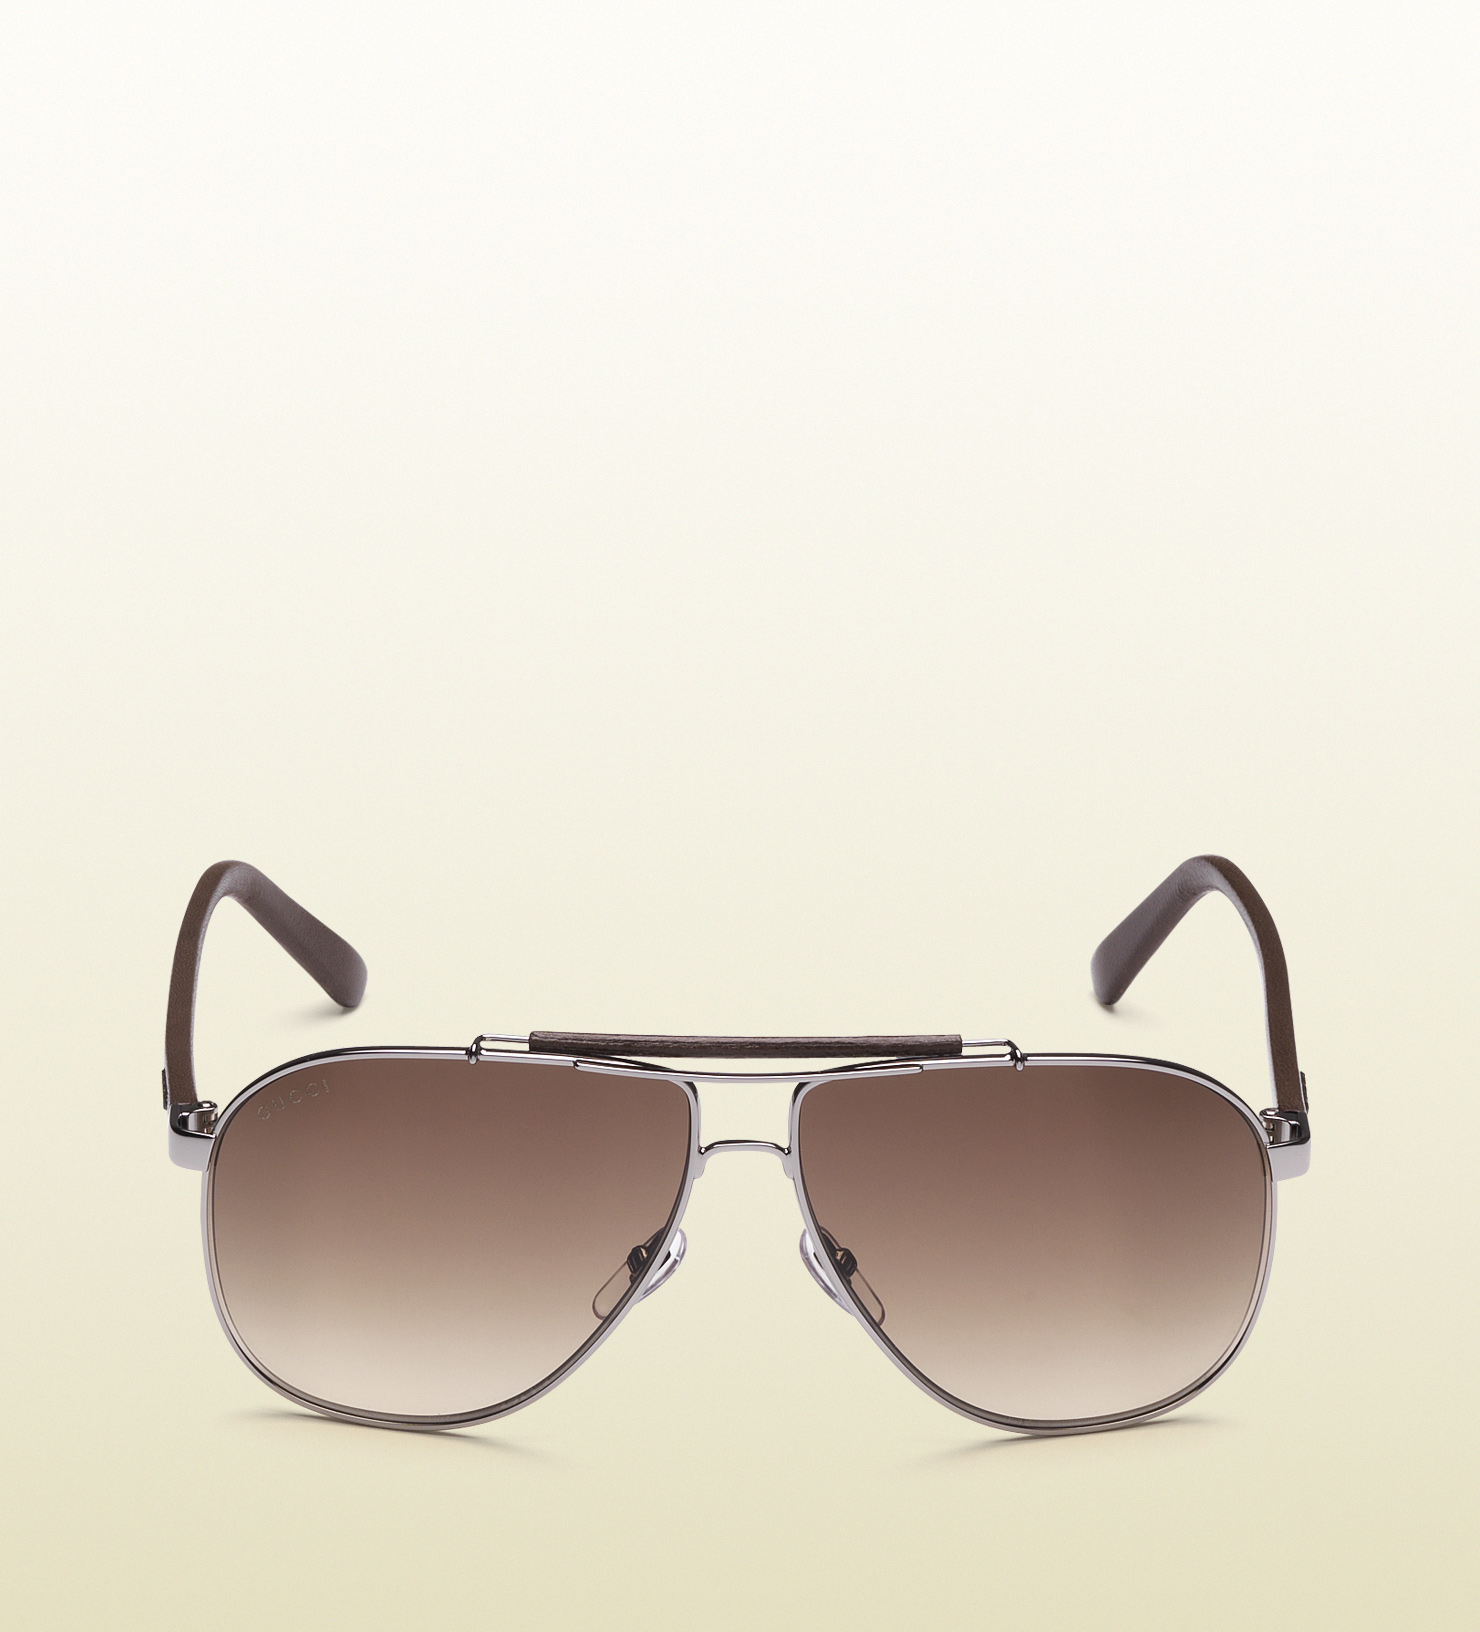 92d88e83b39 Gucci Aviator Sunglasses with Leather Brow Bar and Temples with Gucci Logo  in Brown for Men